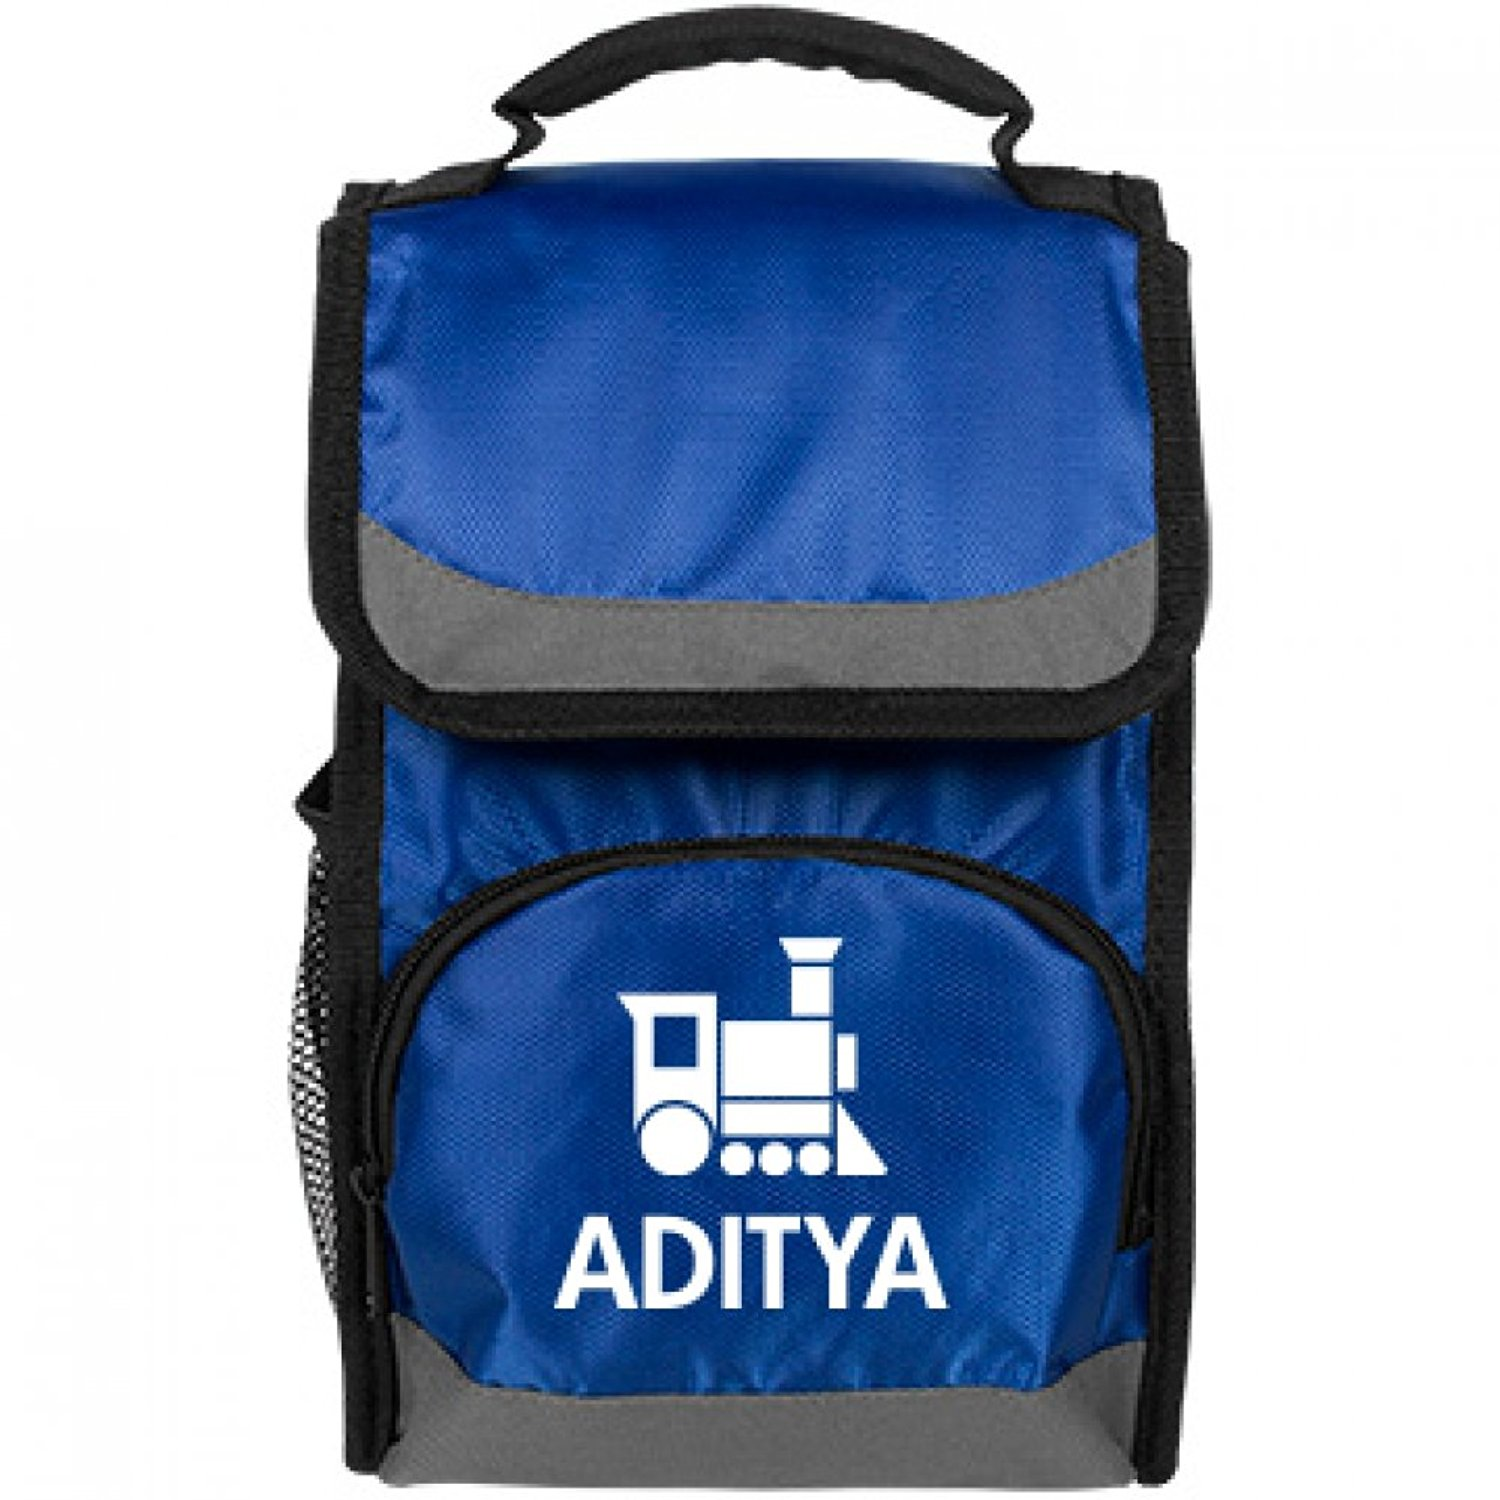 Aditya Kids Cute Train Lunch Bag: Port Authority Flap Lunch Cooler Bag